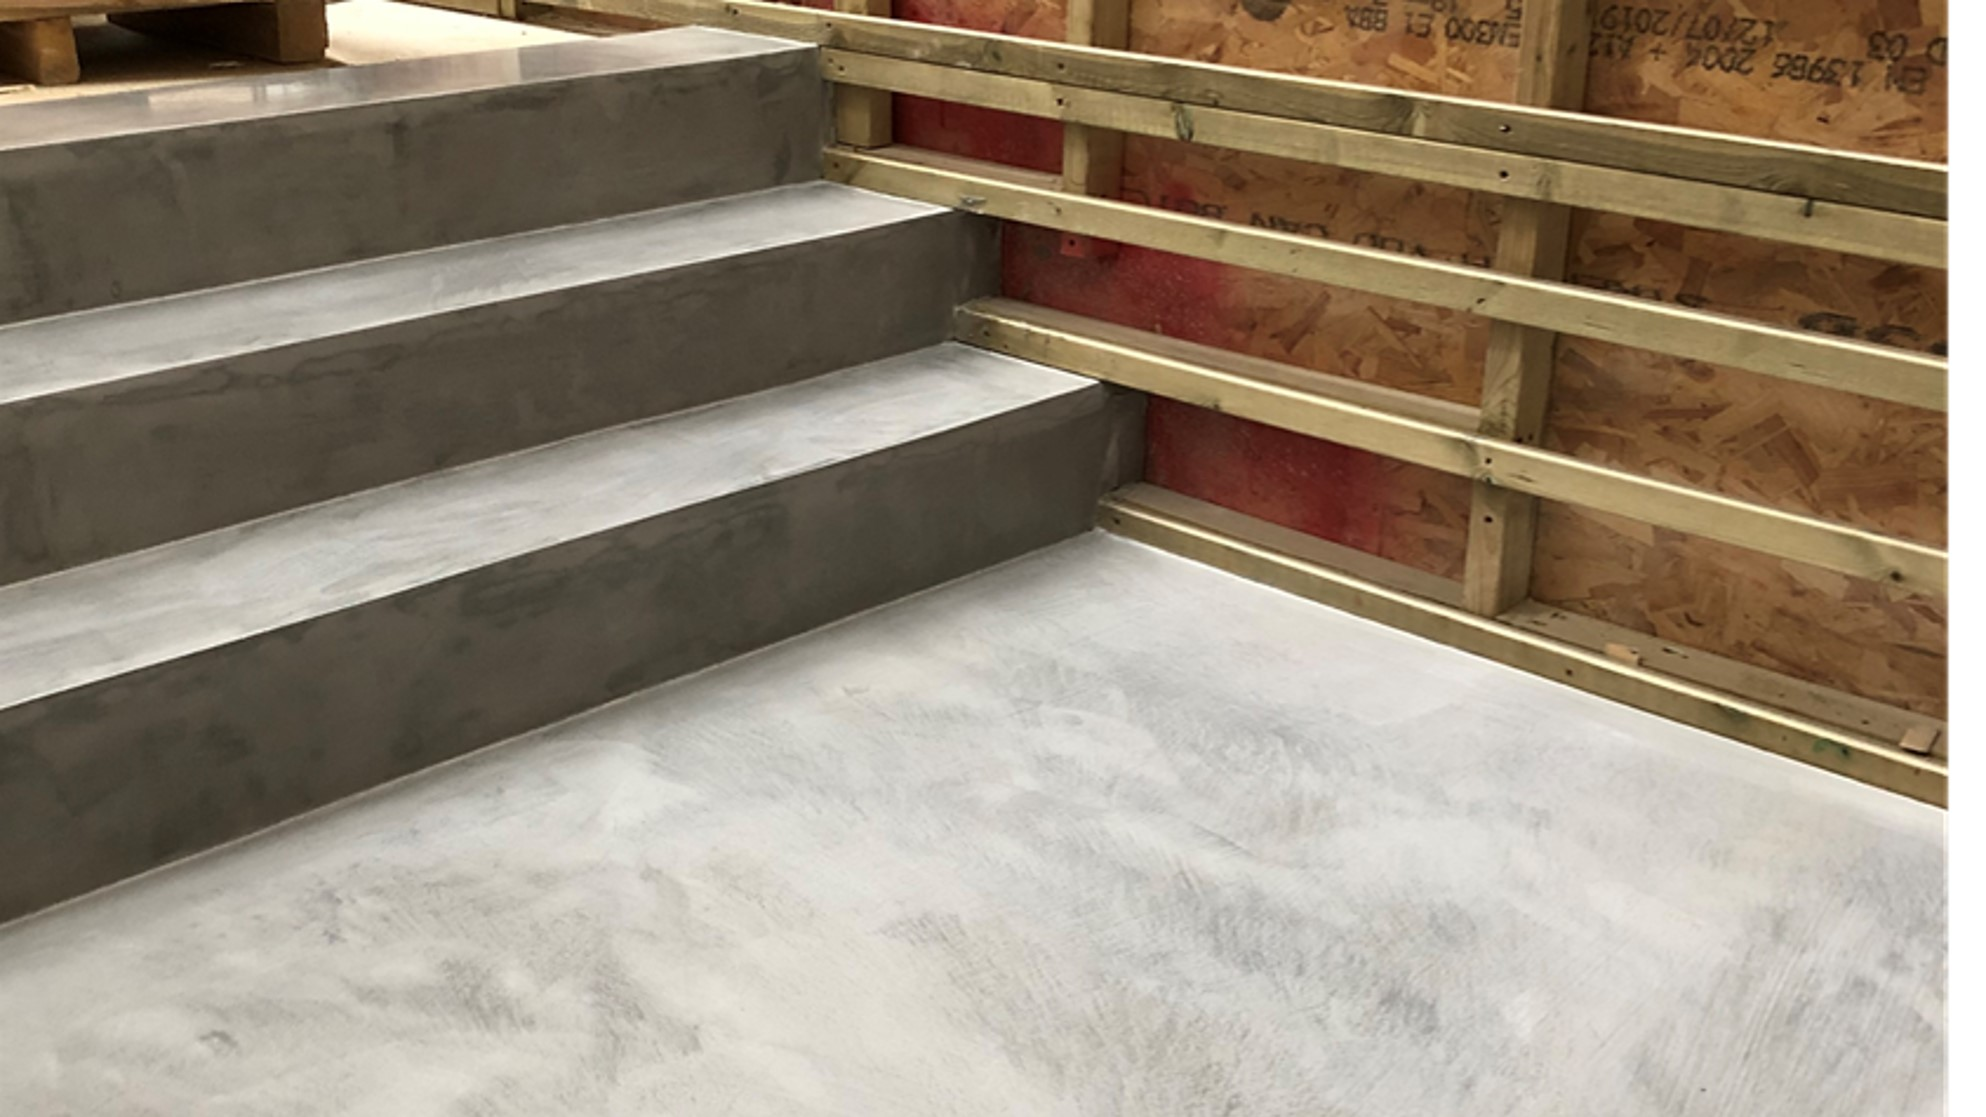 Ideal work microtopping microcement stairs by Polished Concrete Specialists in East Sussex